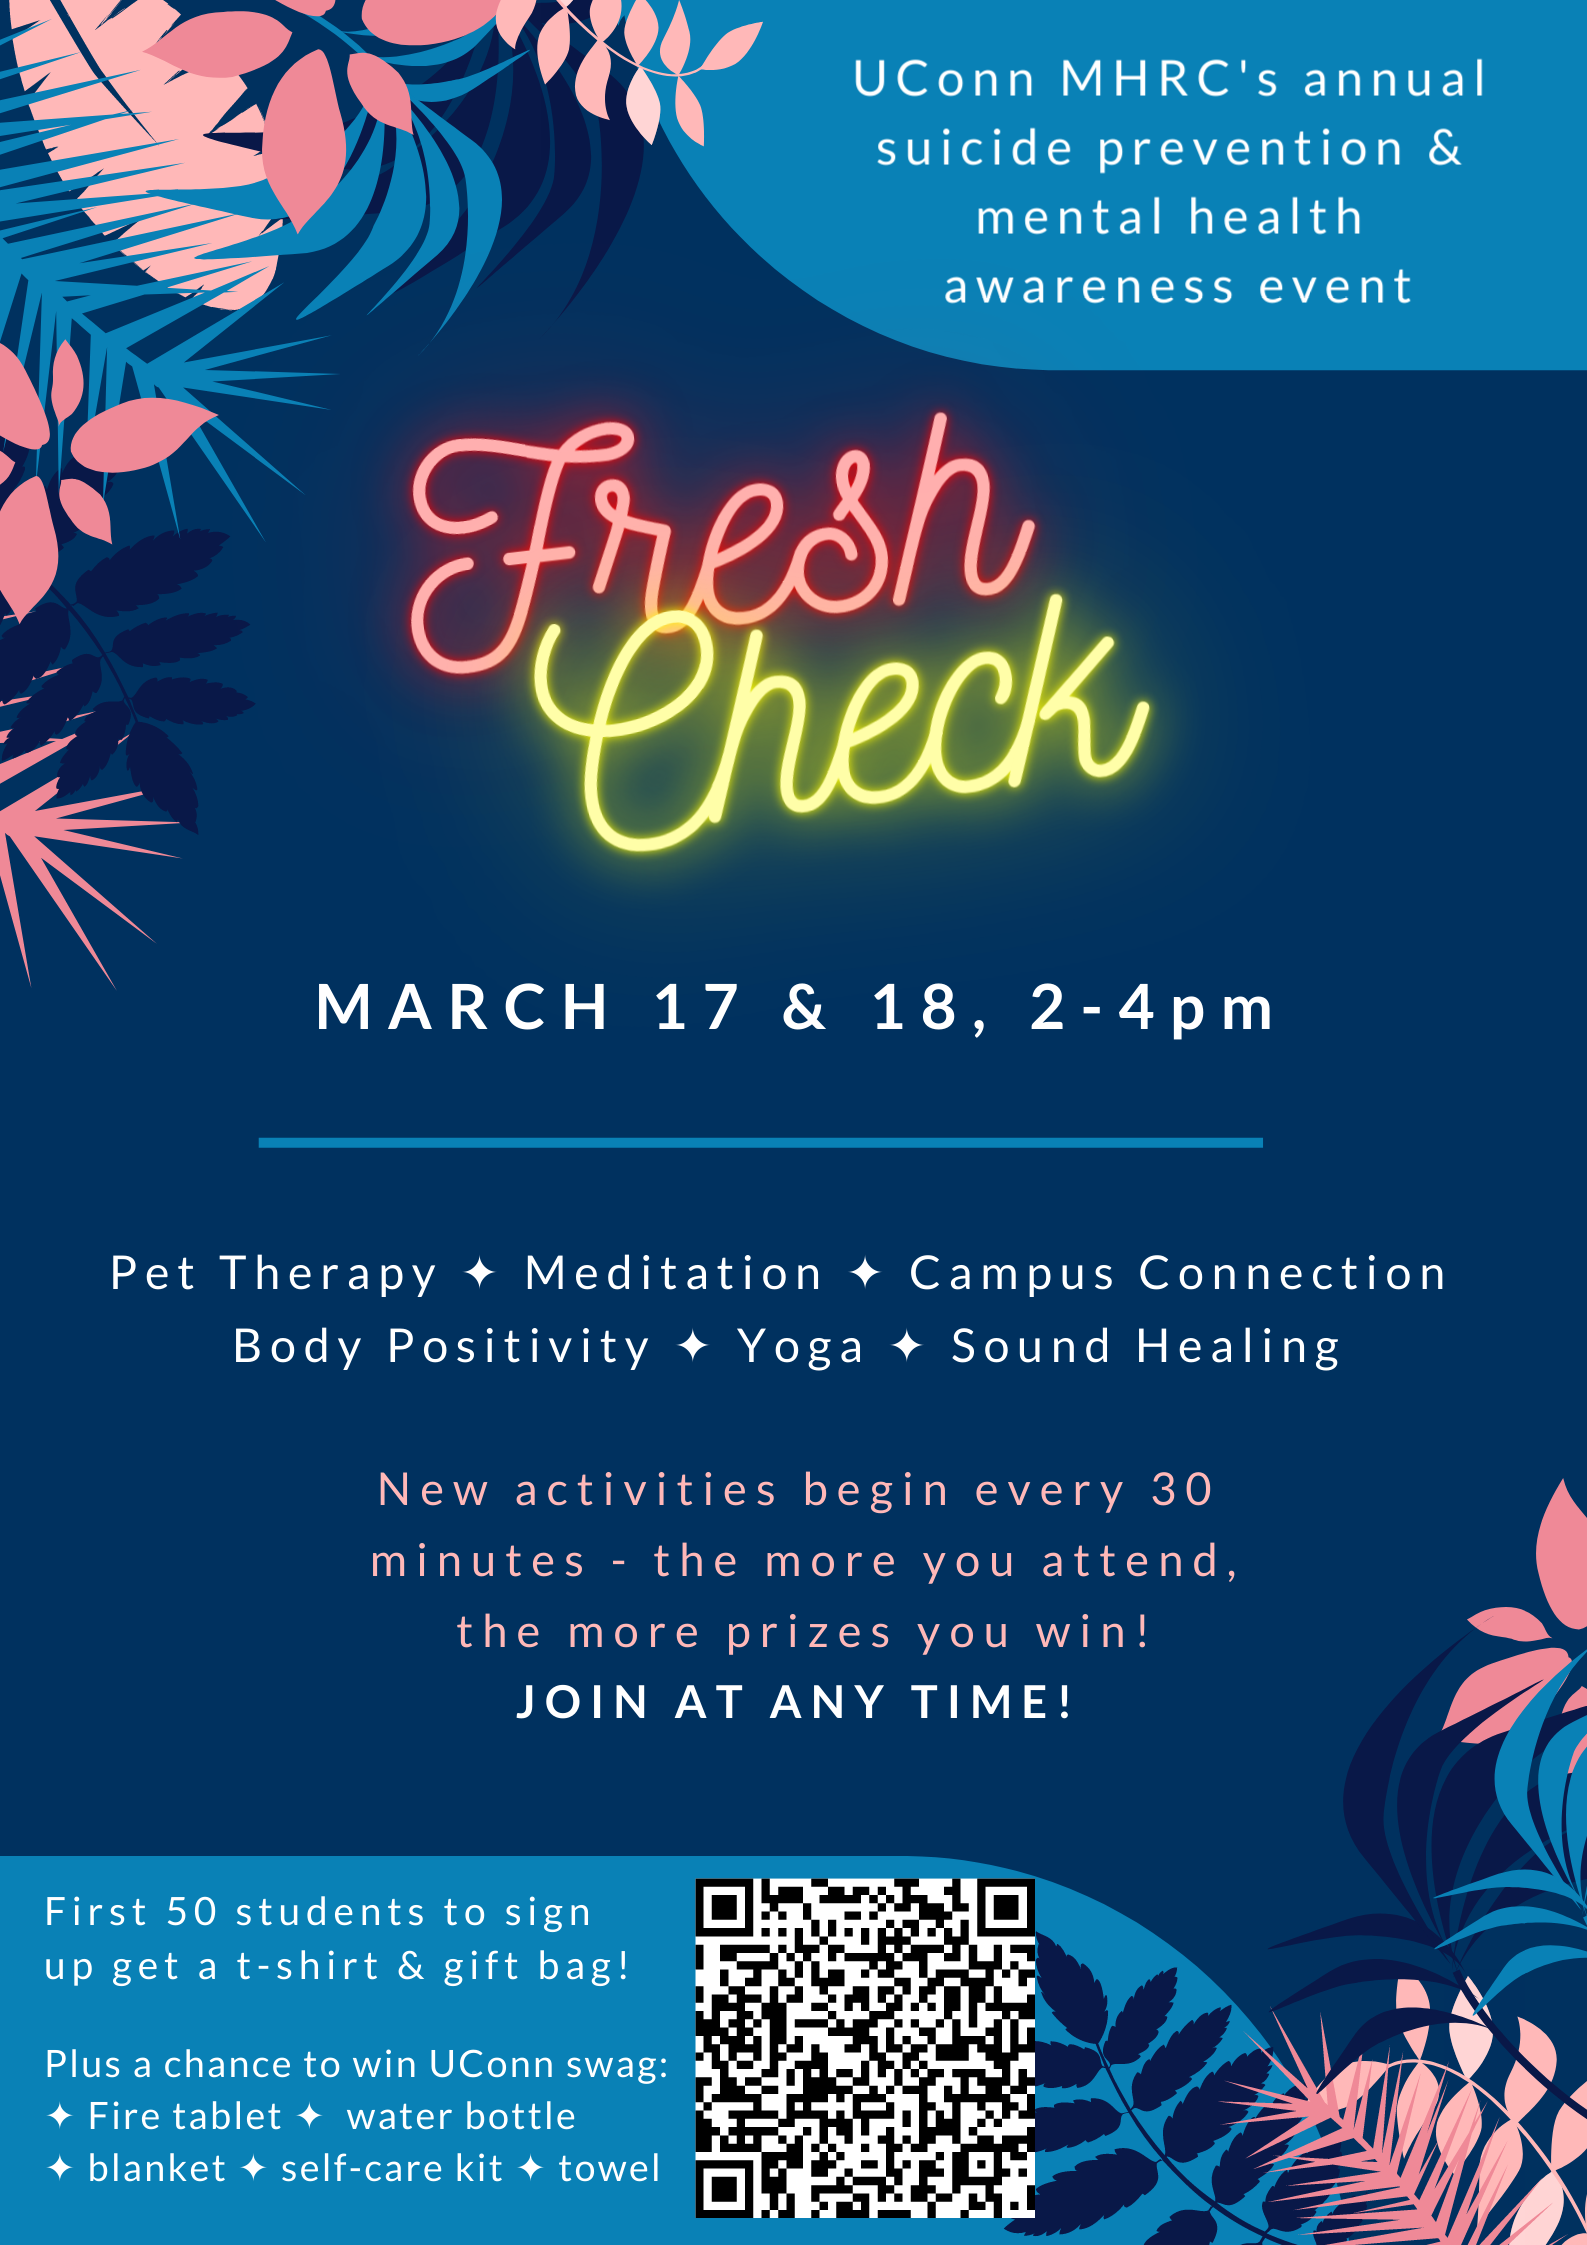 Fresh Check Day March 17 & 18, 2-4pm